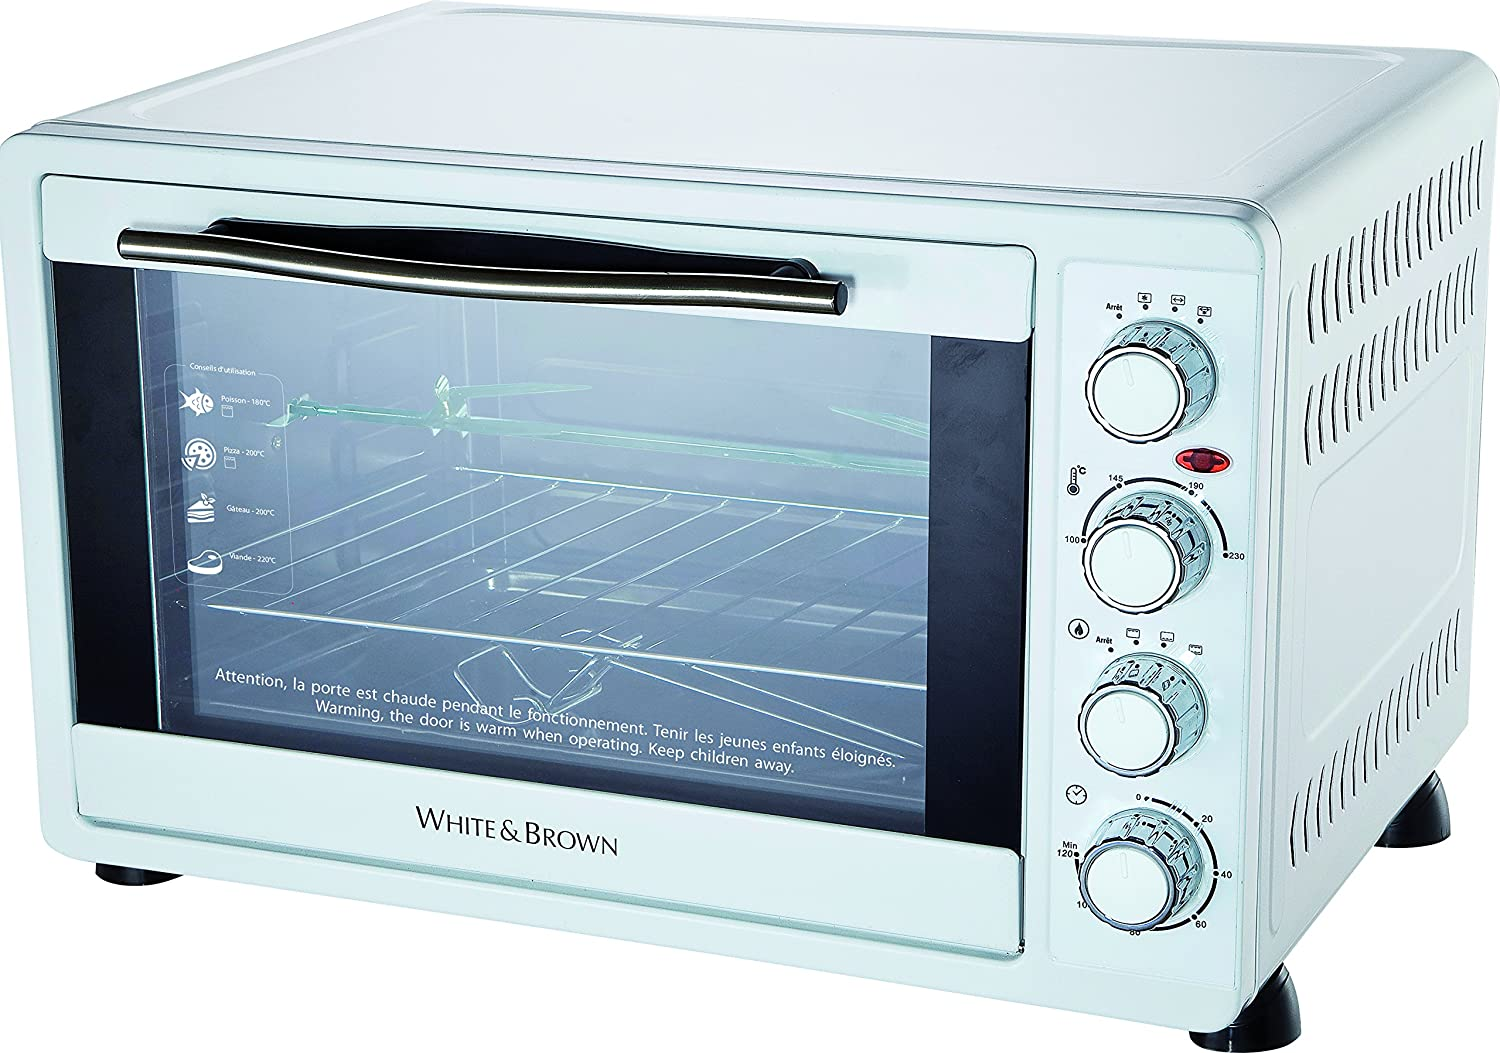 White & Brown f97130230 horno multifunción (55 L, 2200 W, color ...